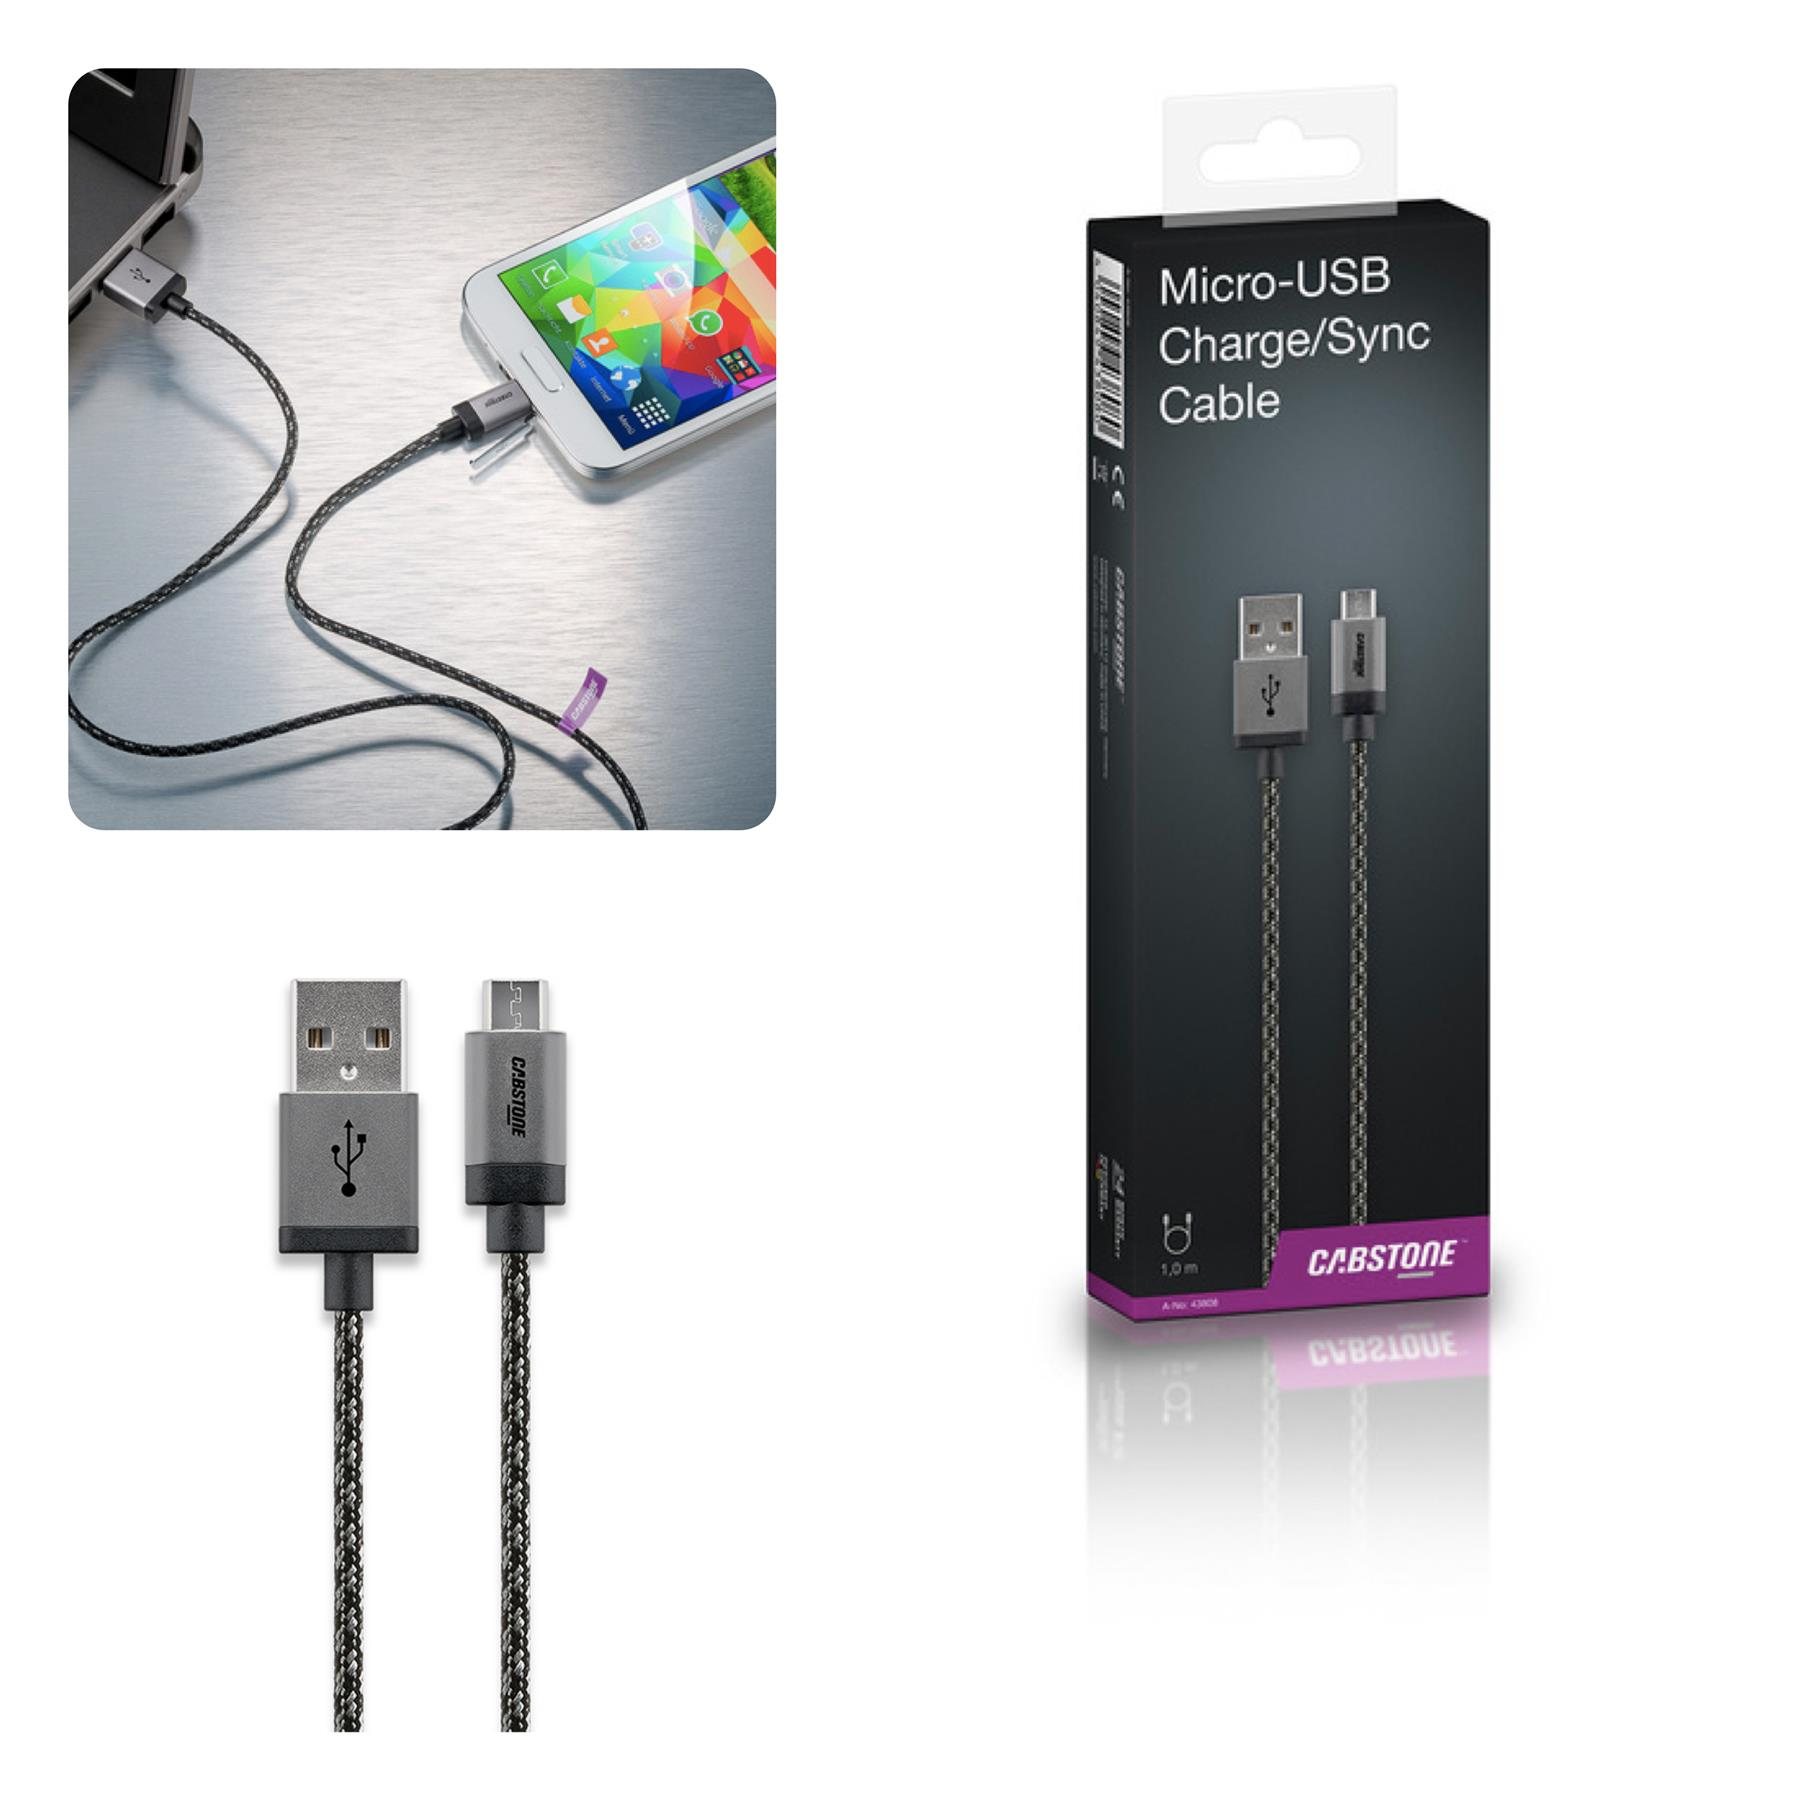 Bdotcom = Cabstone 1M Metal Sync and Charging Micro USB Cable